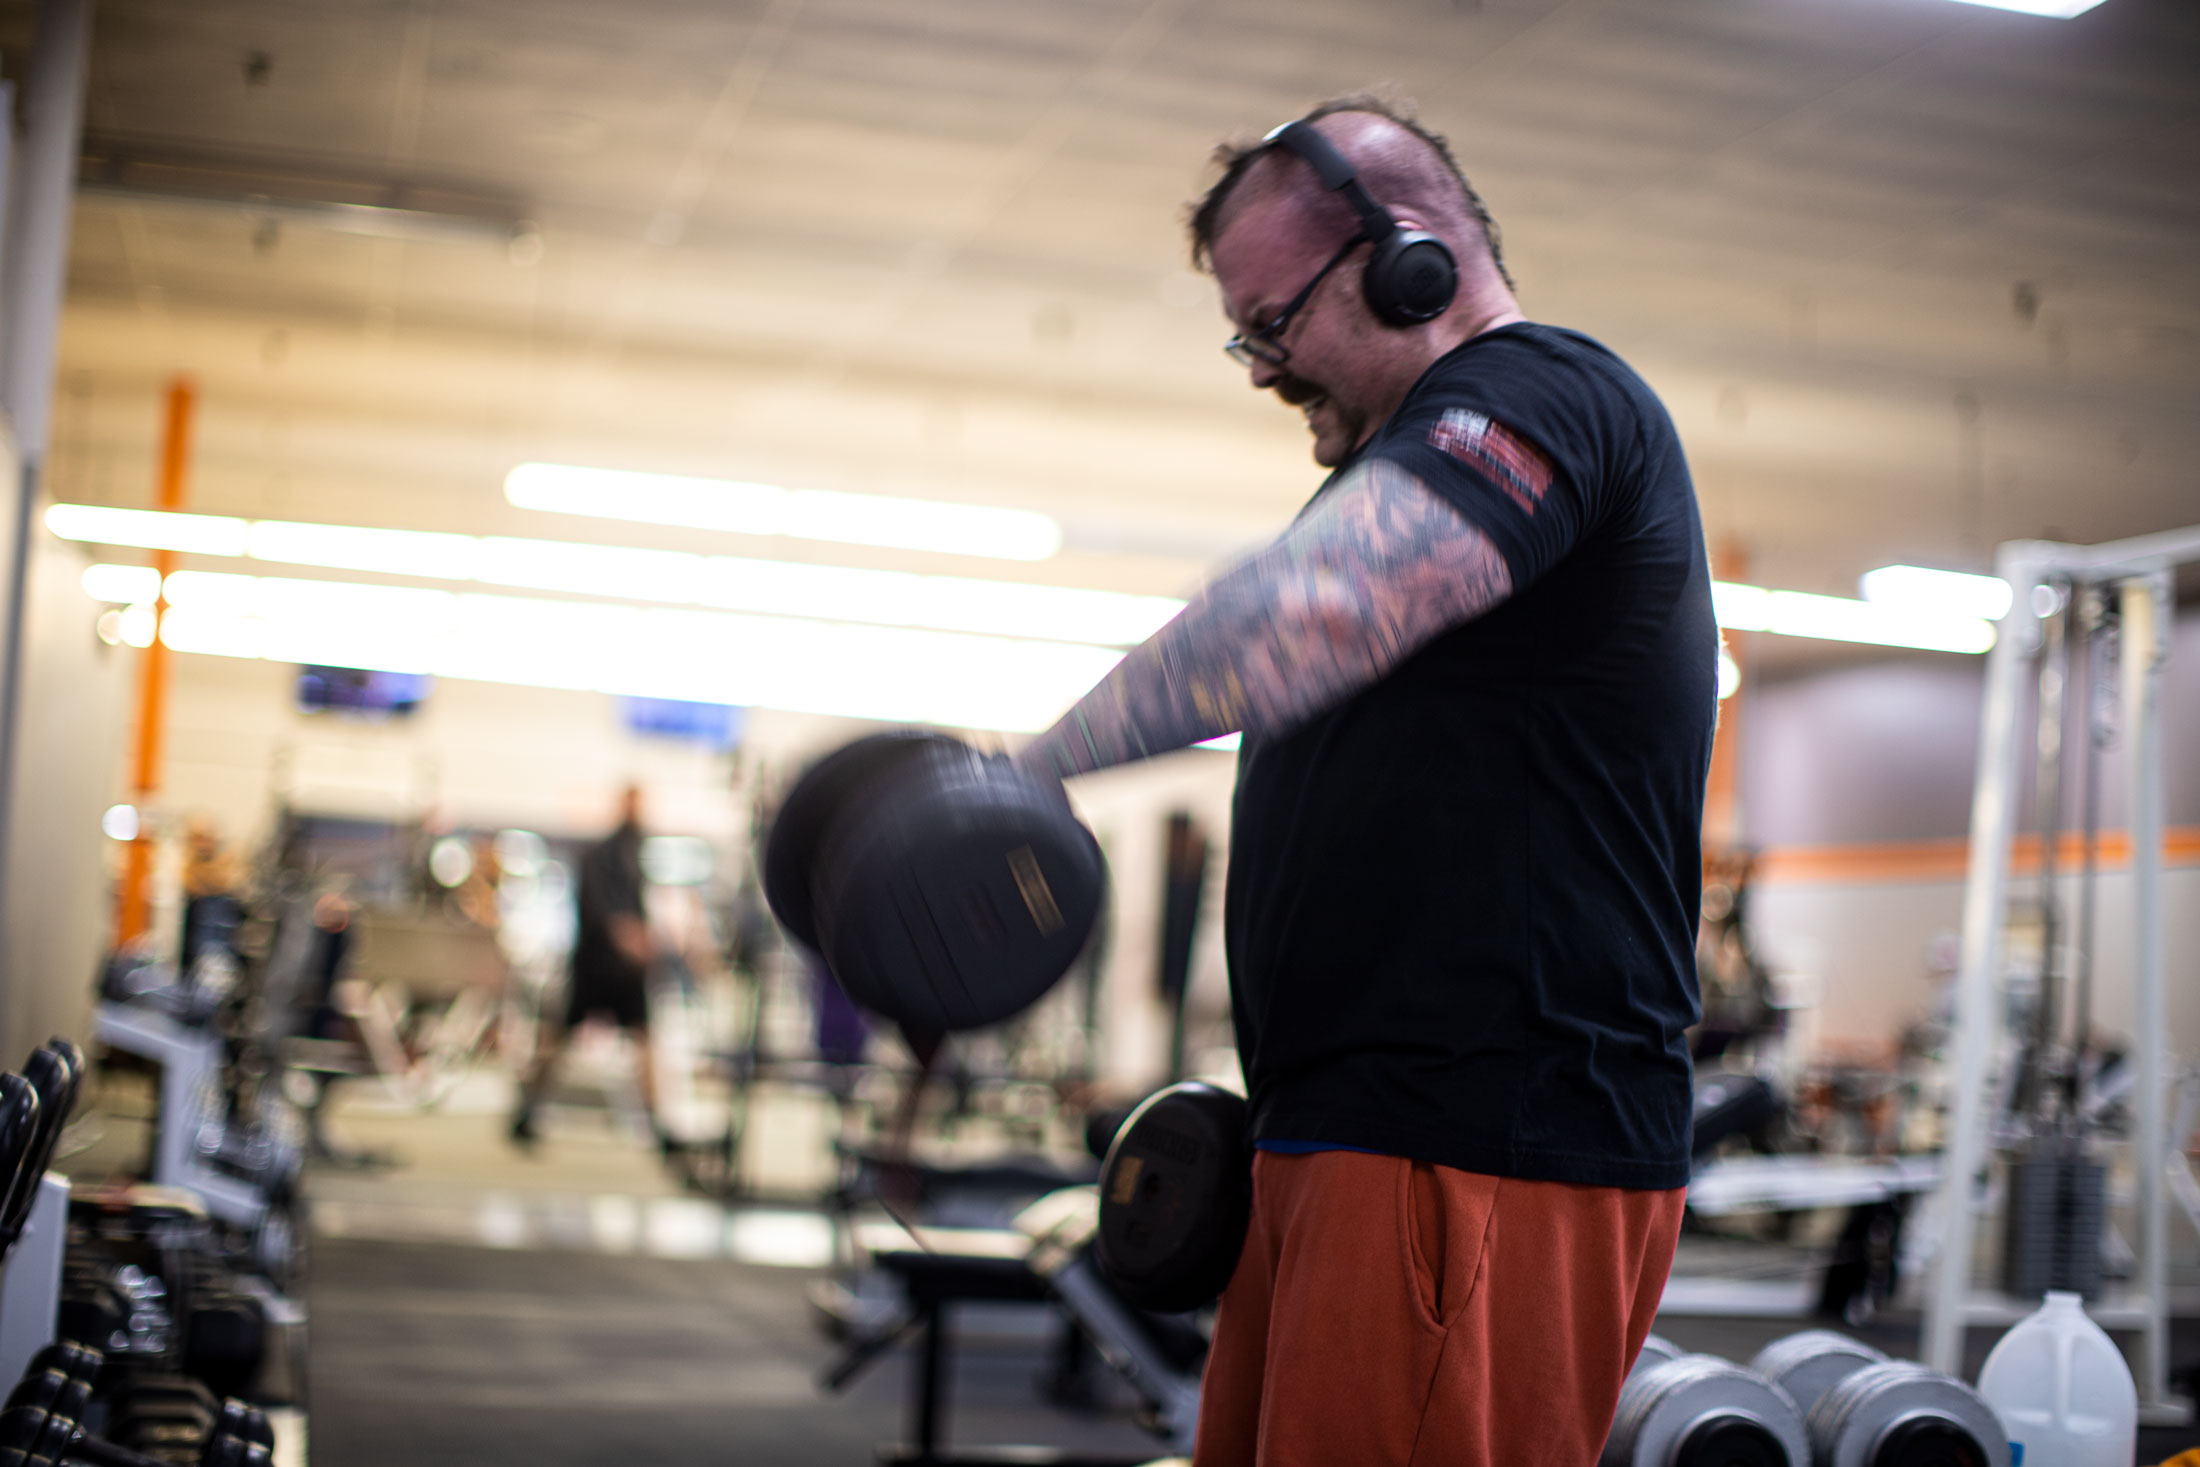 man in black t-shirt and headphones lifting weights